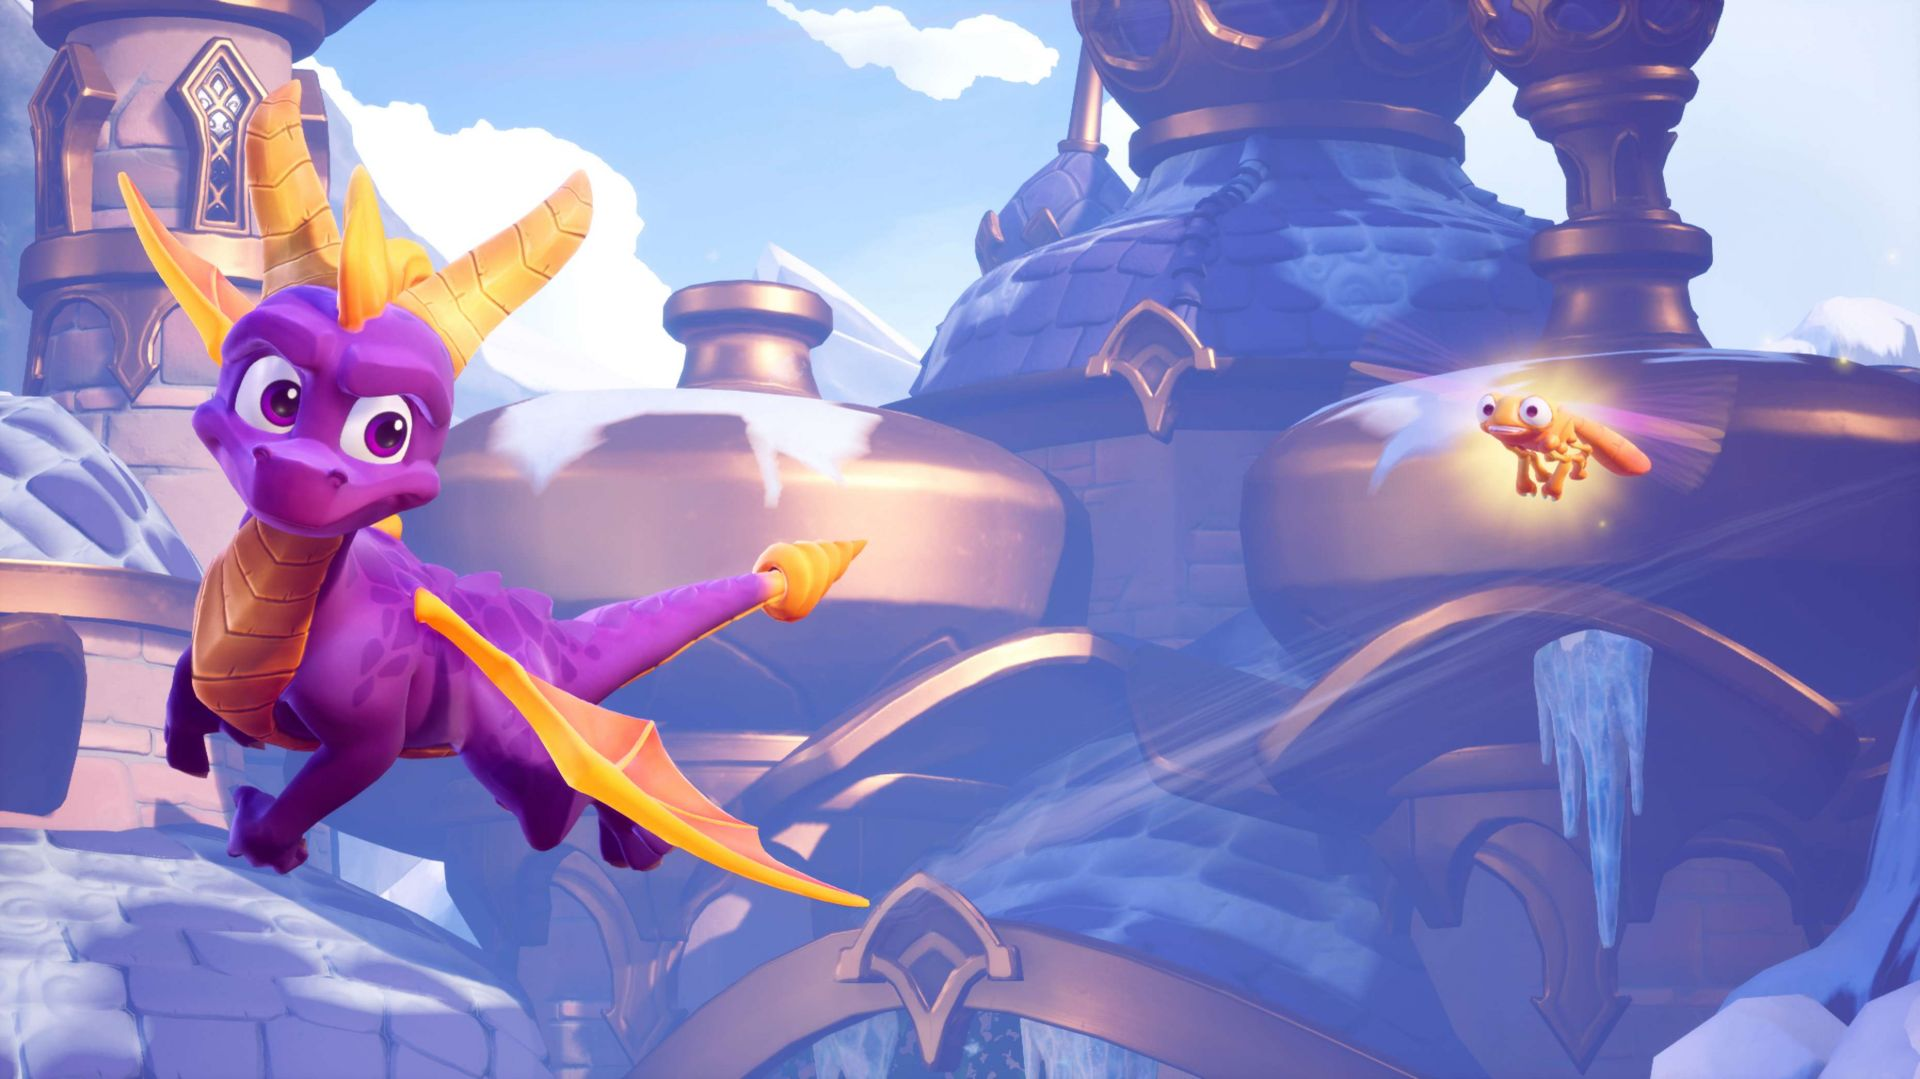 Spyro Reignited Trilogy #8